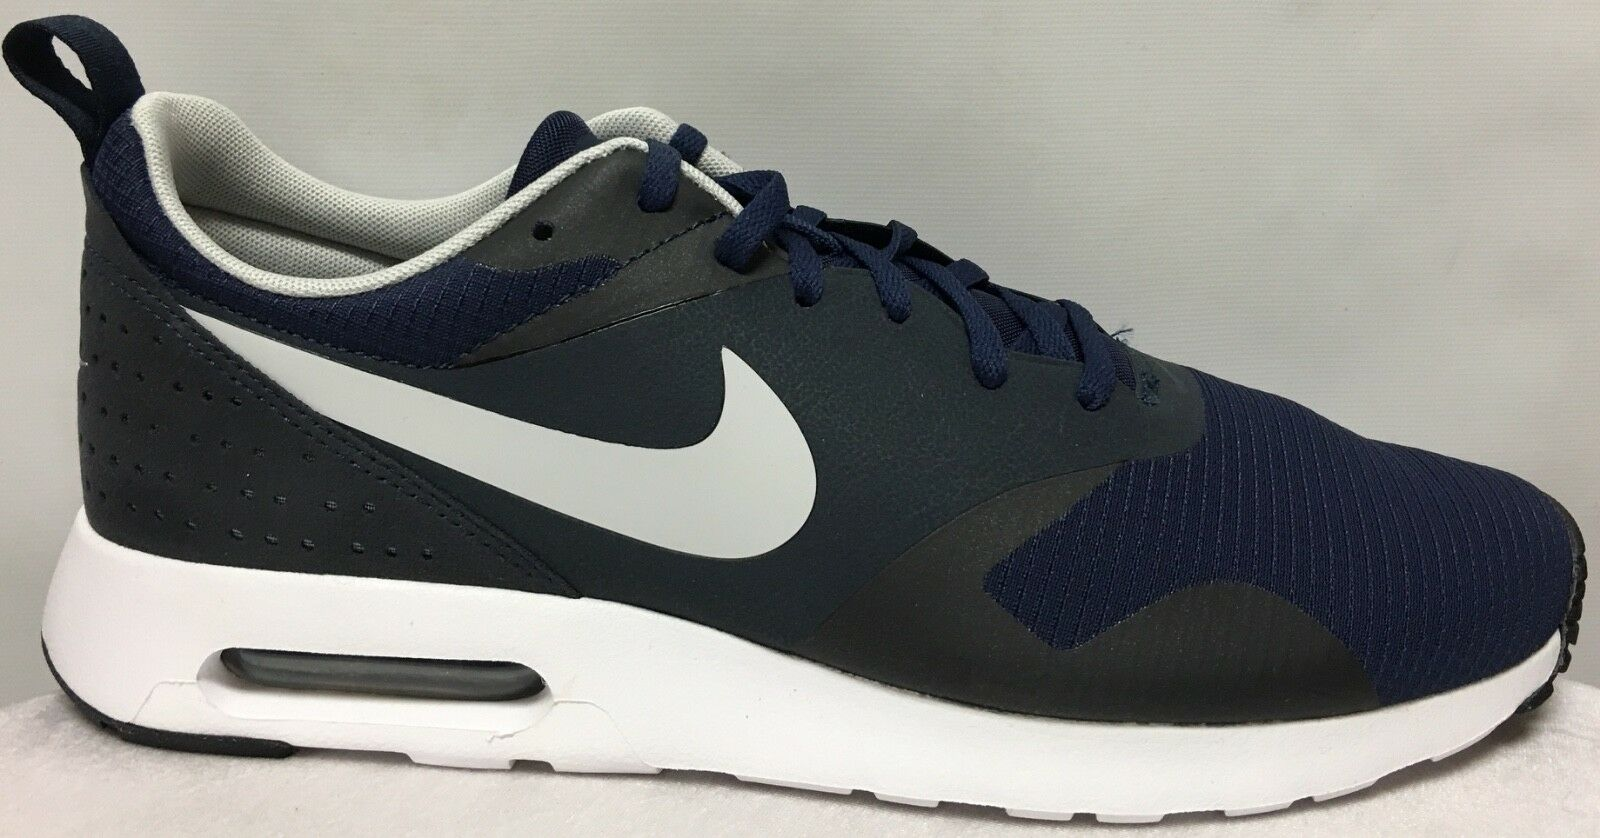 Nike Air Max Tavas chaussures in Taille 11